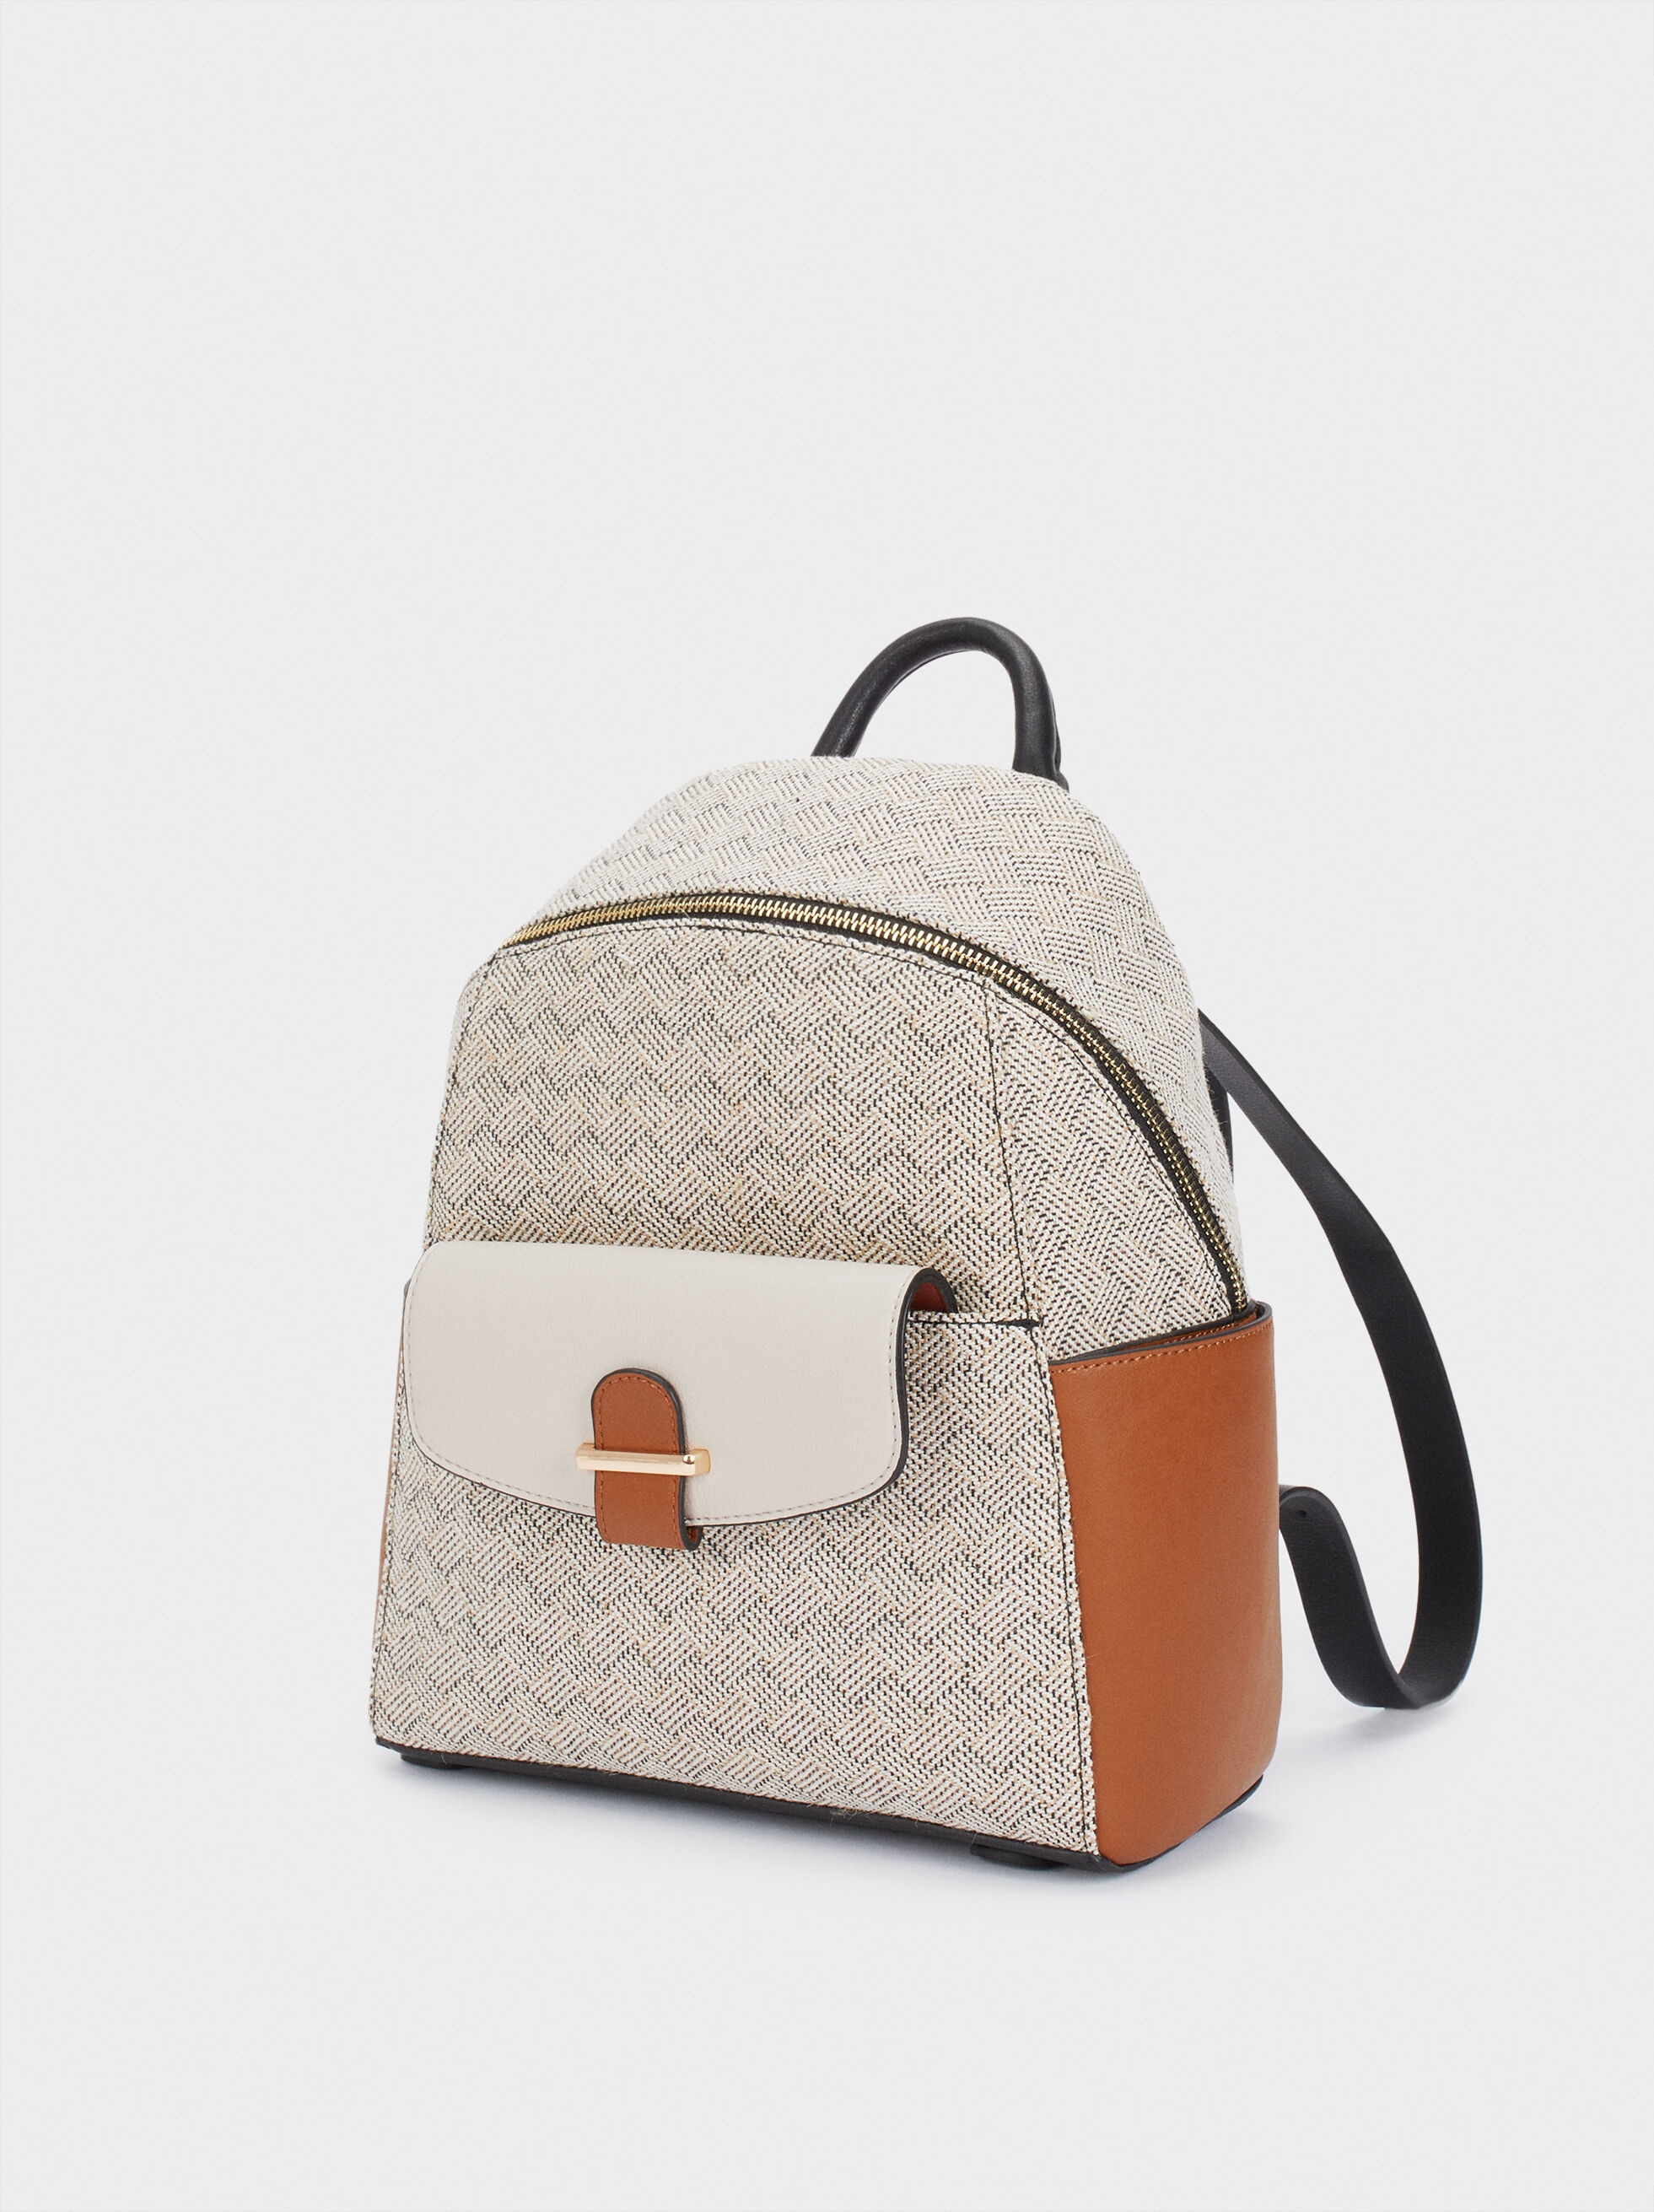 Elisa Backpack, Camel, hi-res